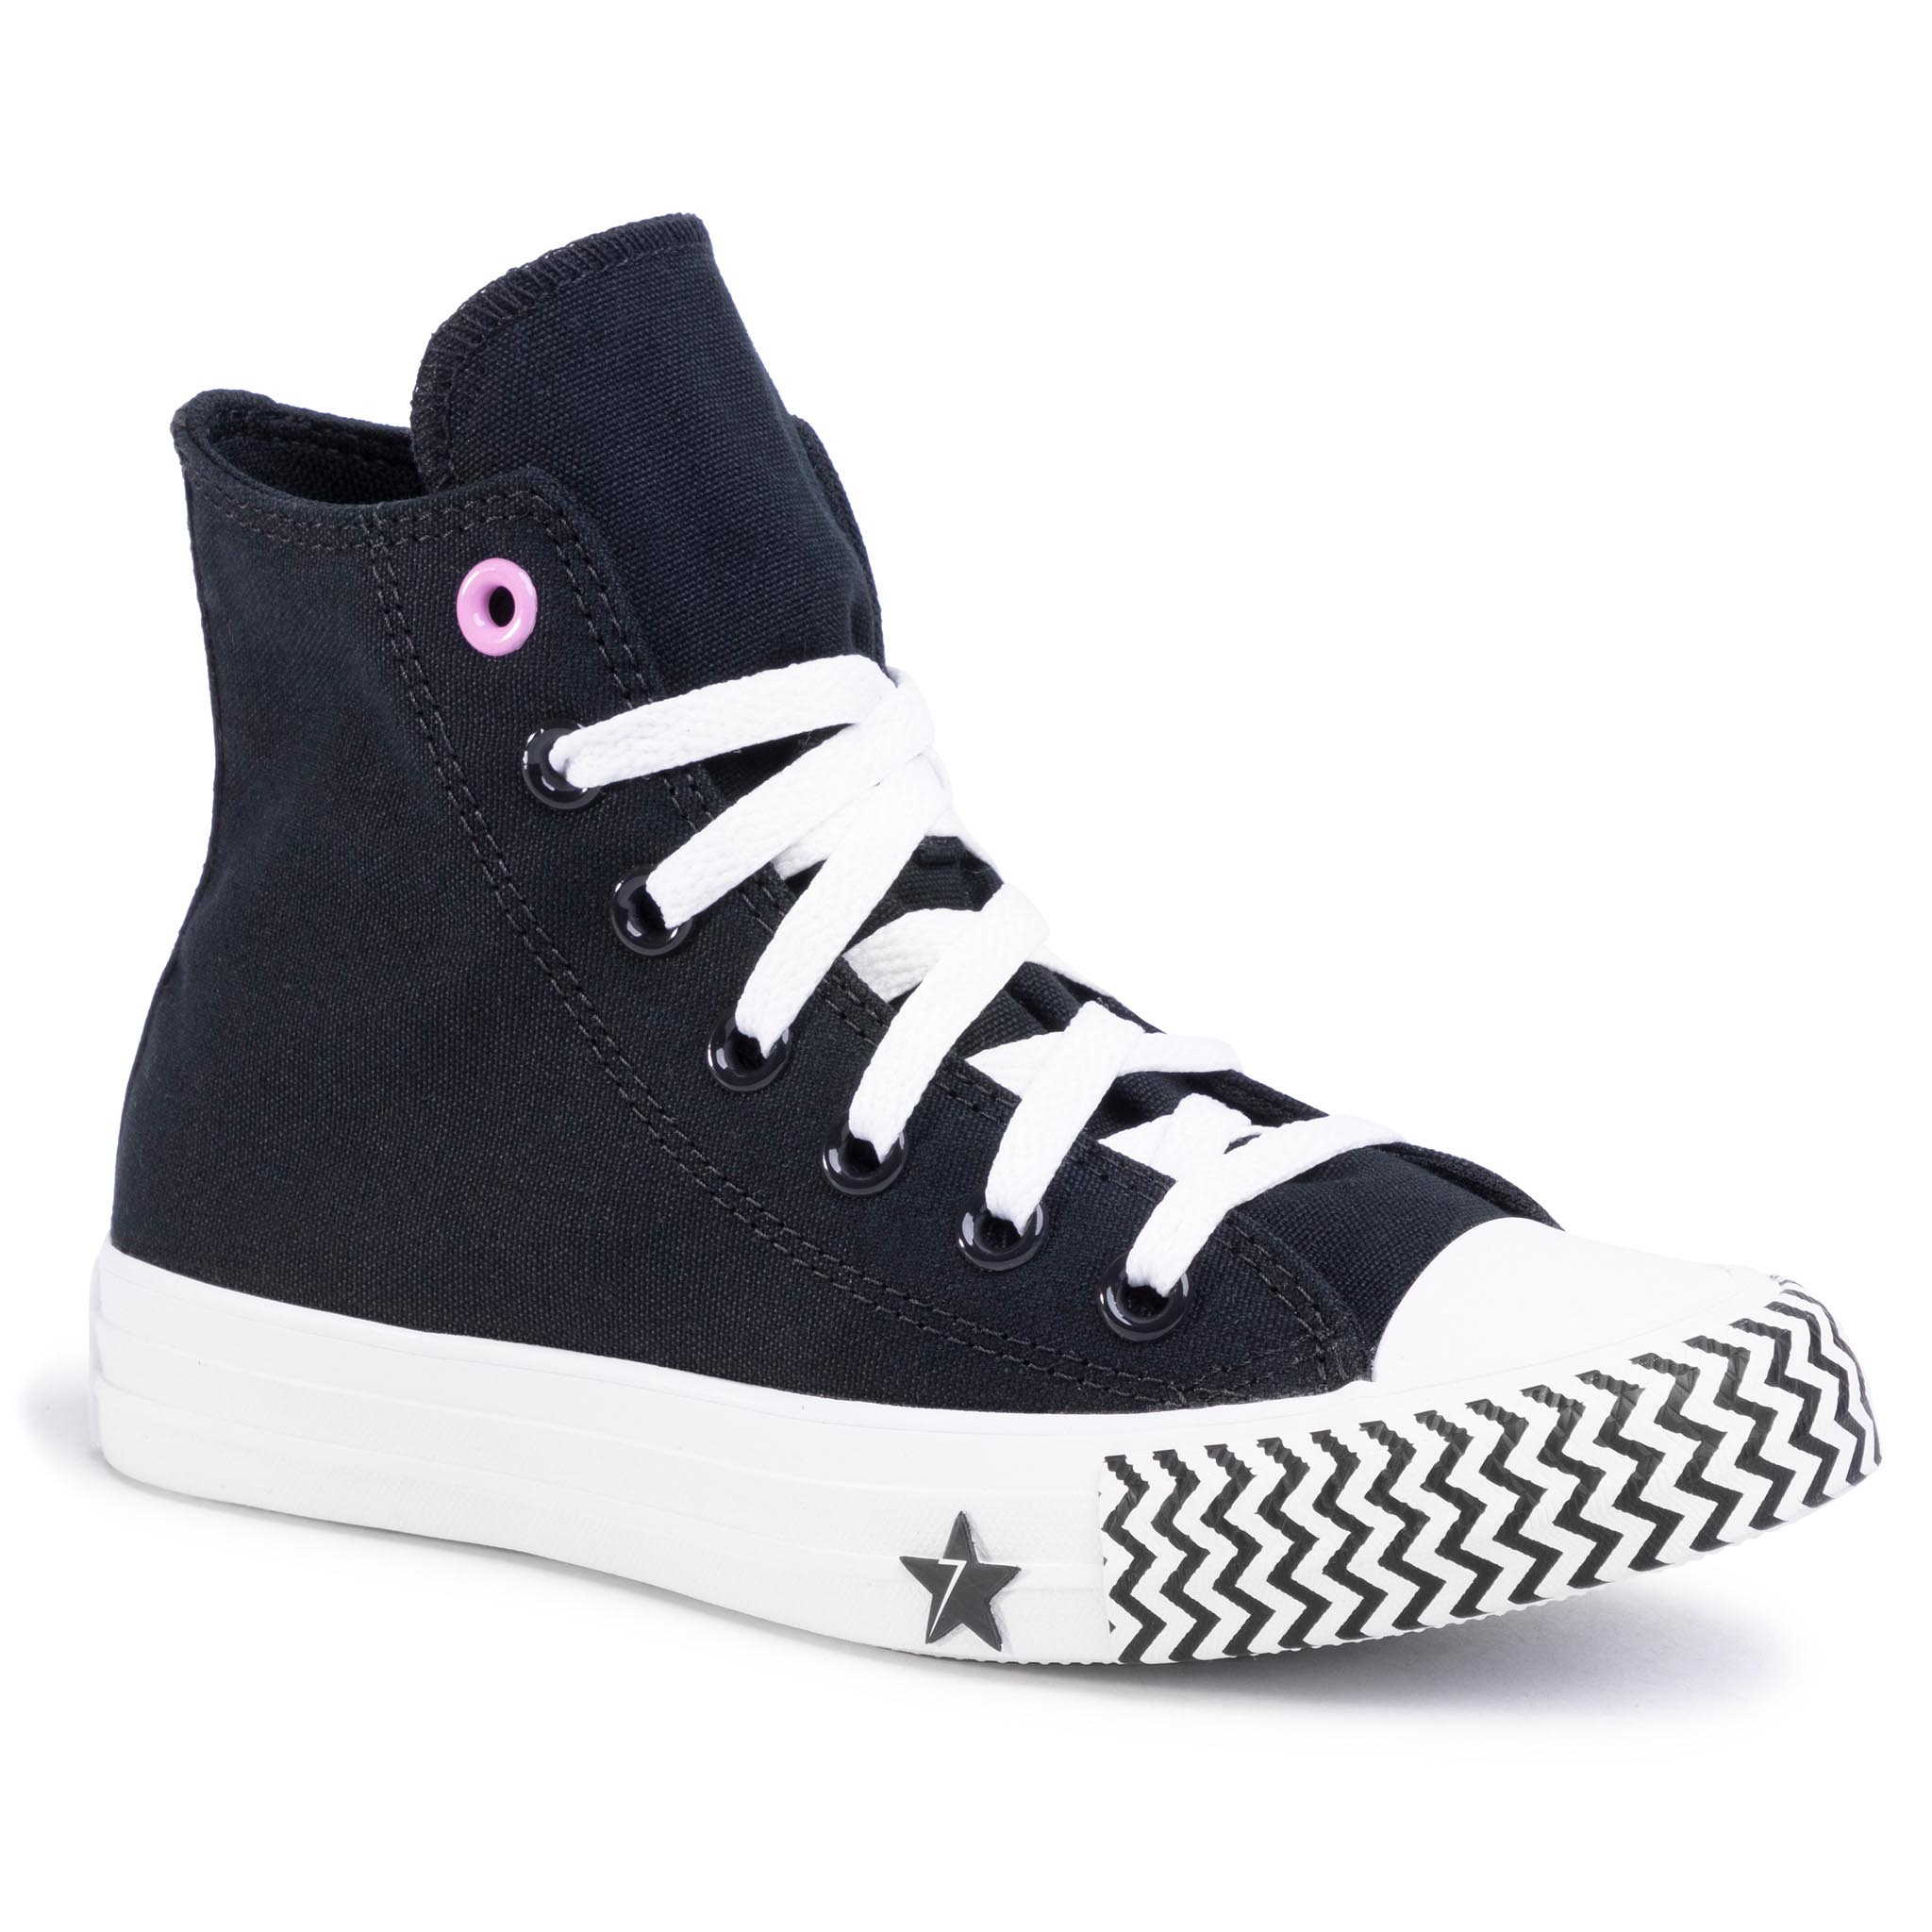 Teniși Converse - Ctas Hi 566731c Black/University Red/White imagine epantofi.ro 2021